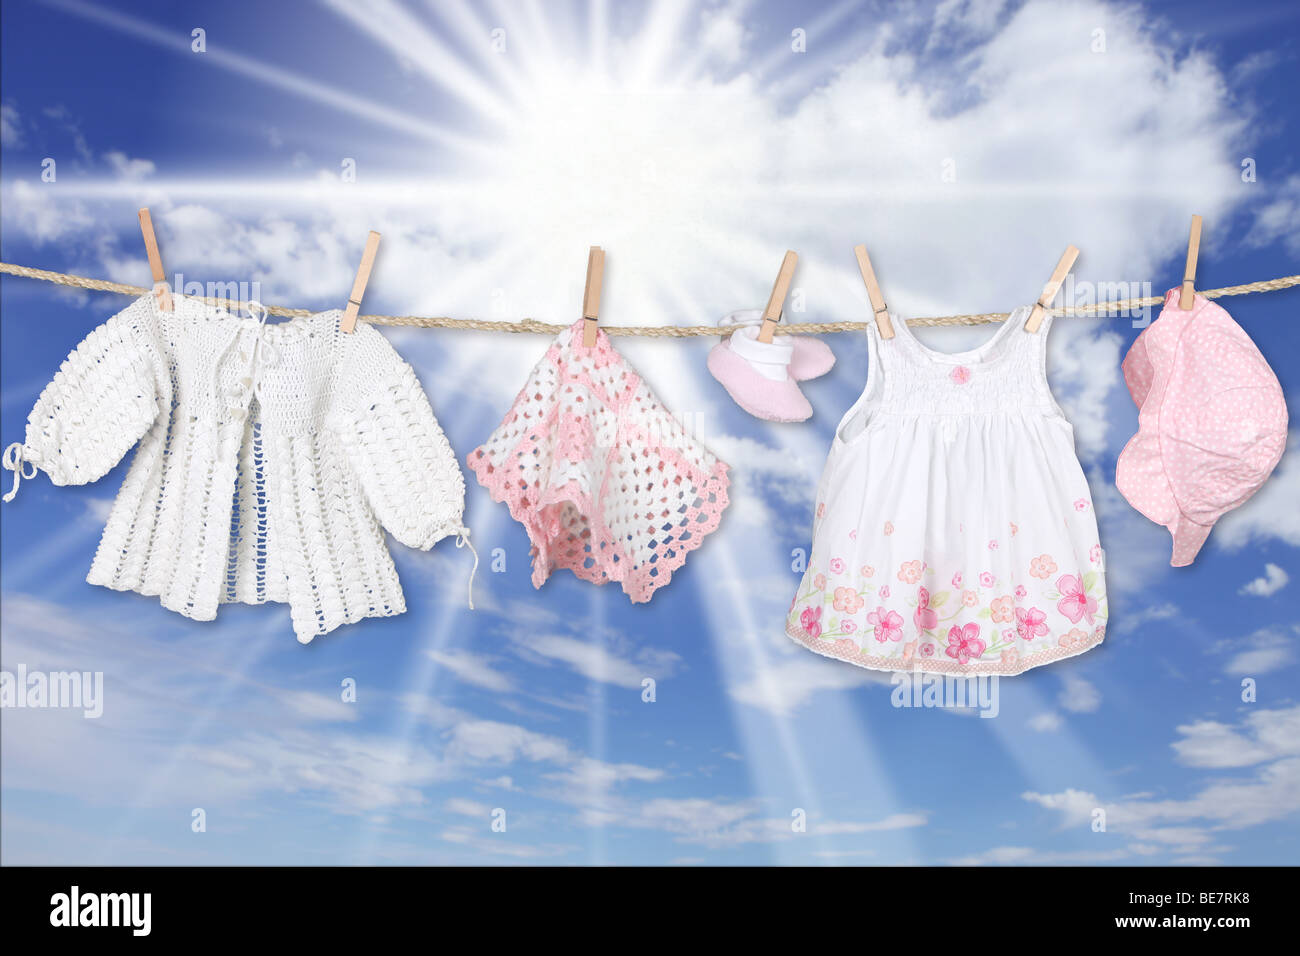 Adorable Baby Girl Clothes Hanging Outdoors - Stock Image